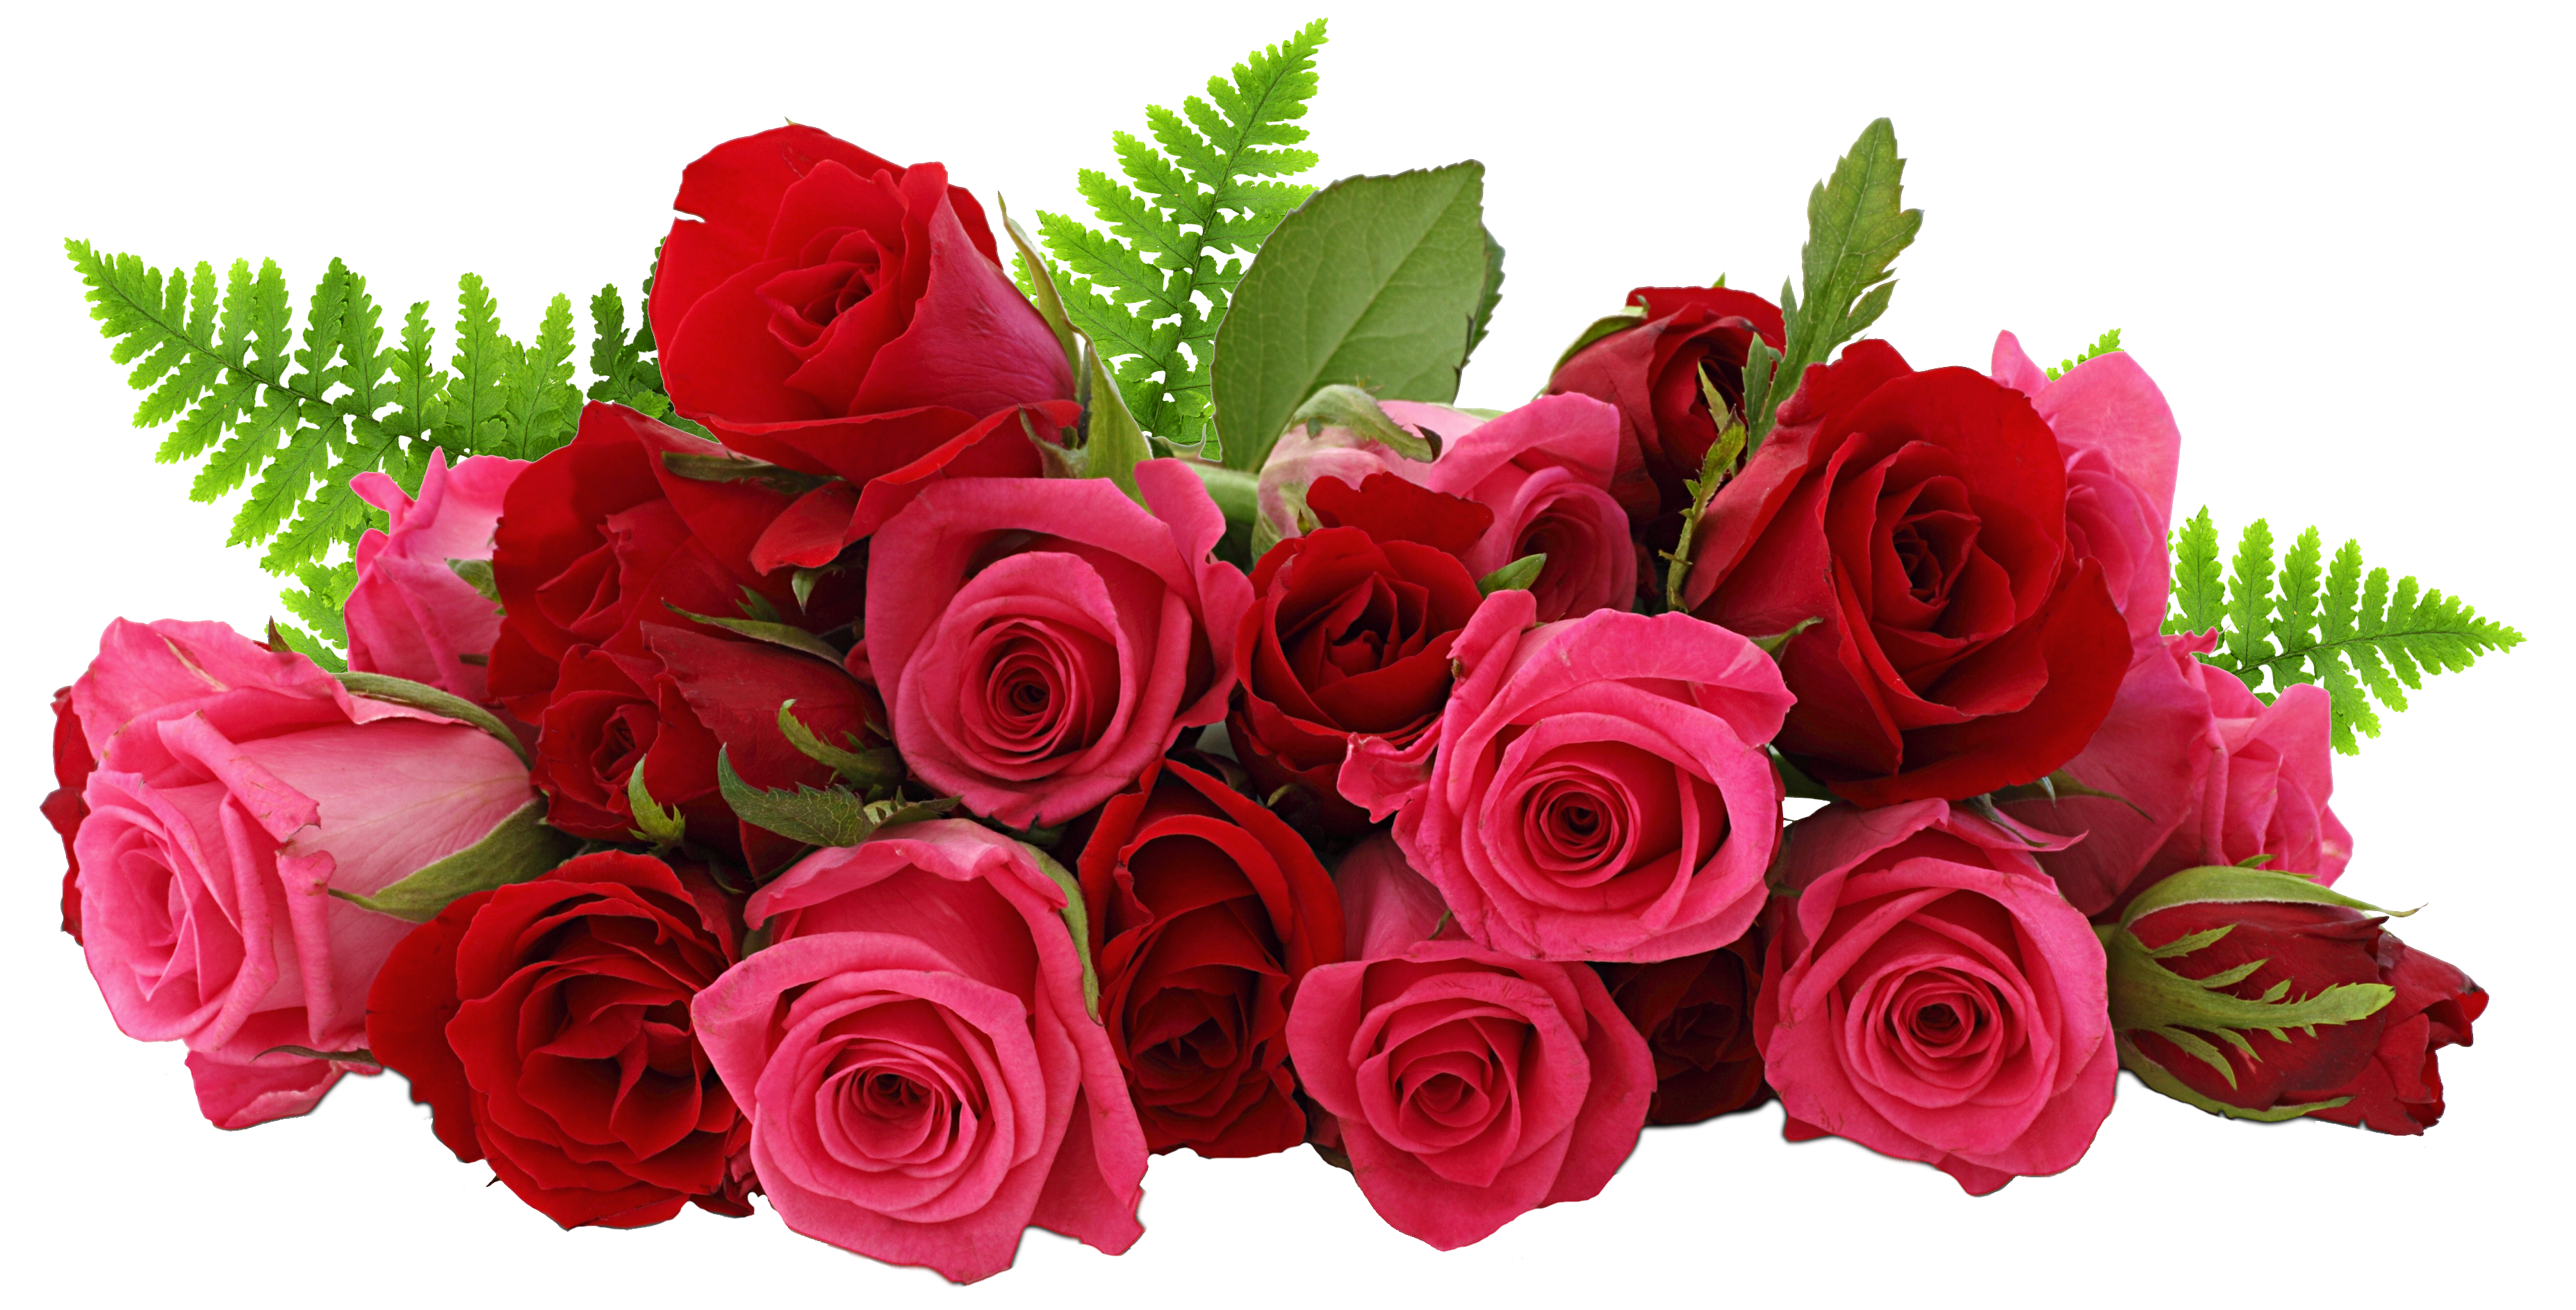 Wedding Roses Png image #39860 - Rose PNG - Rose HD PNG